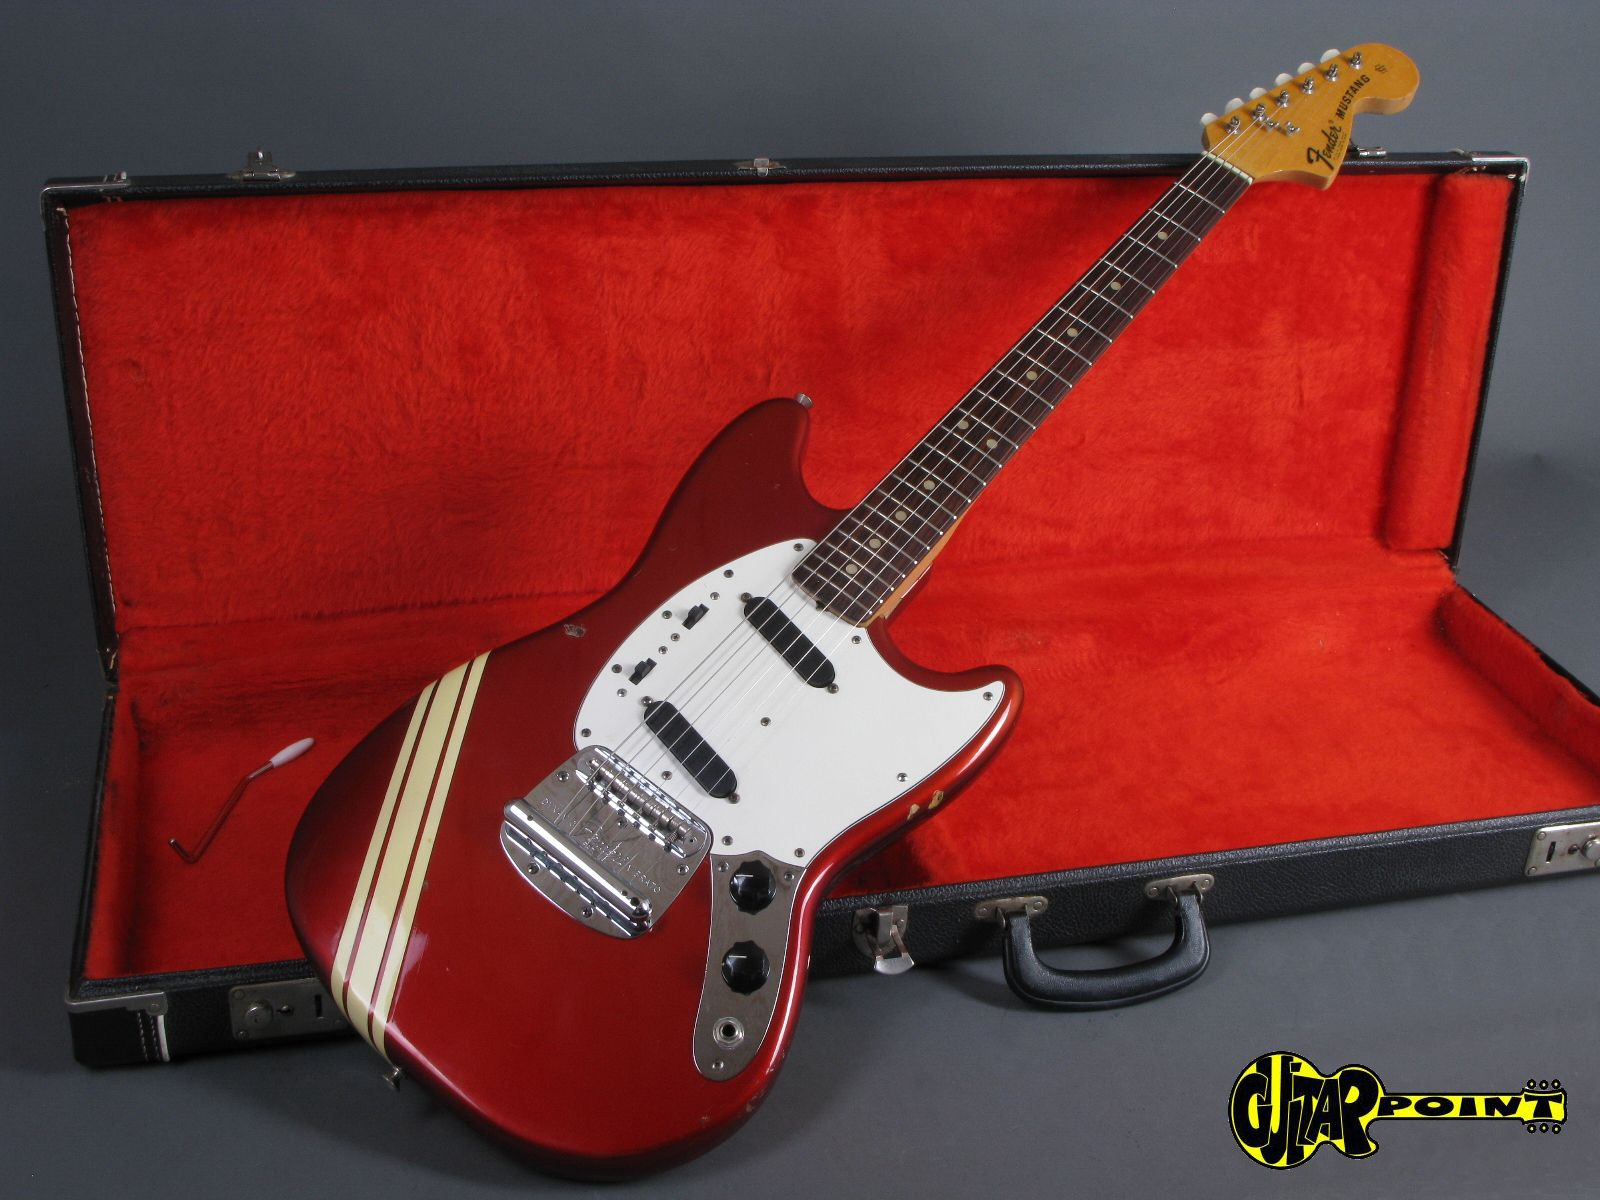 https://guitarpoint.de/app/uploads/products/1974-fender-mustang-competition-candy-apple-red/Fender74MustCAR542260_17.jpg